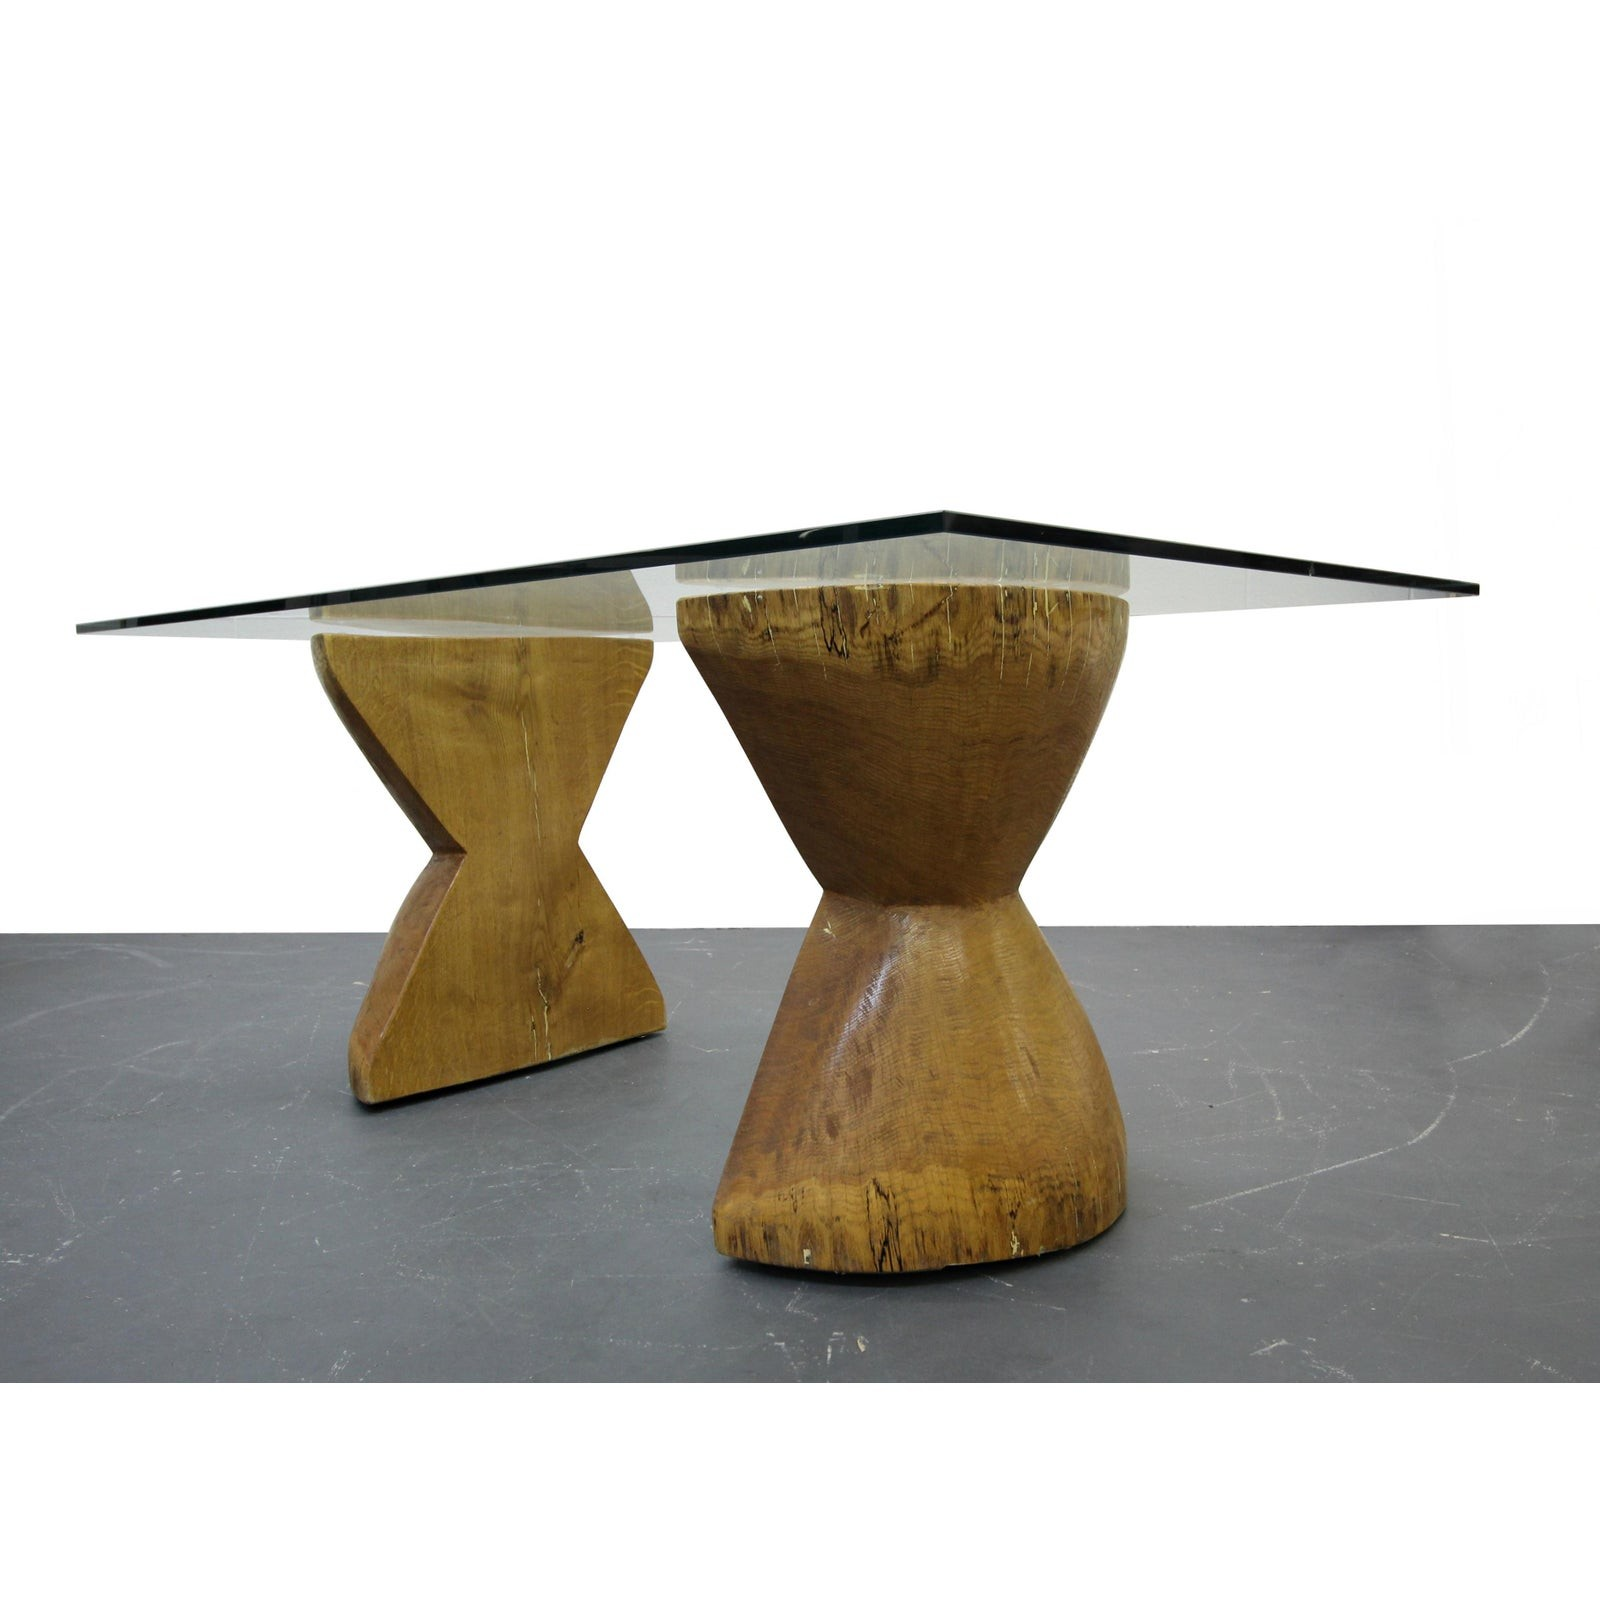 pair-of-raw-live-edge-wood-hourglass-dining-table-pedestals-0399?aspect=fit-width=1600-height=1600